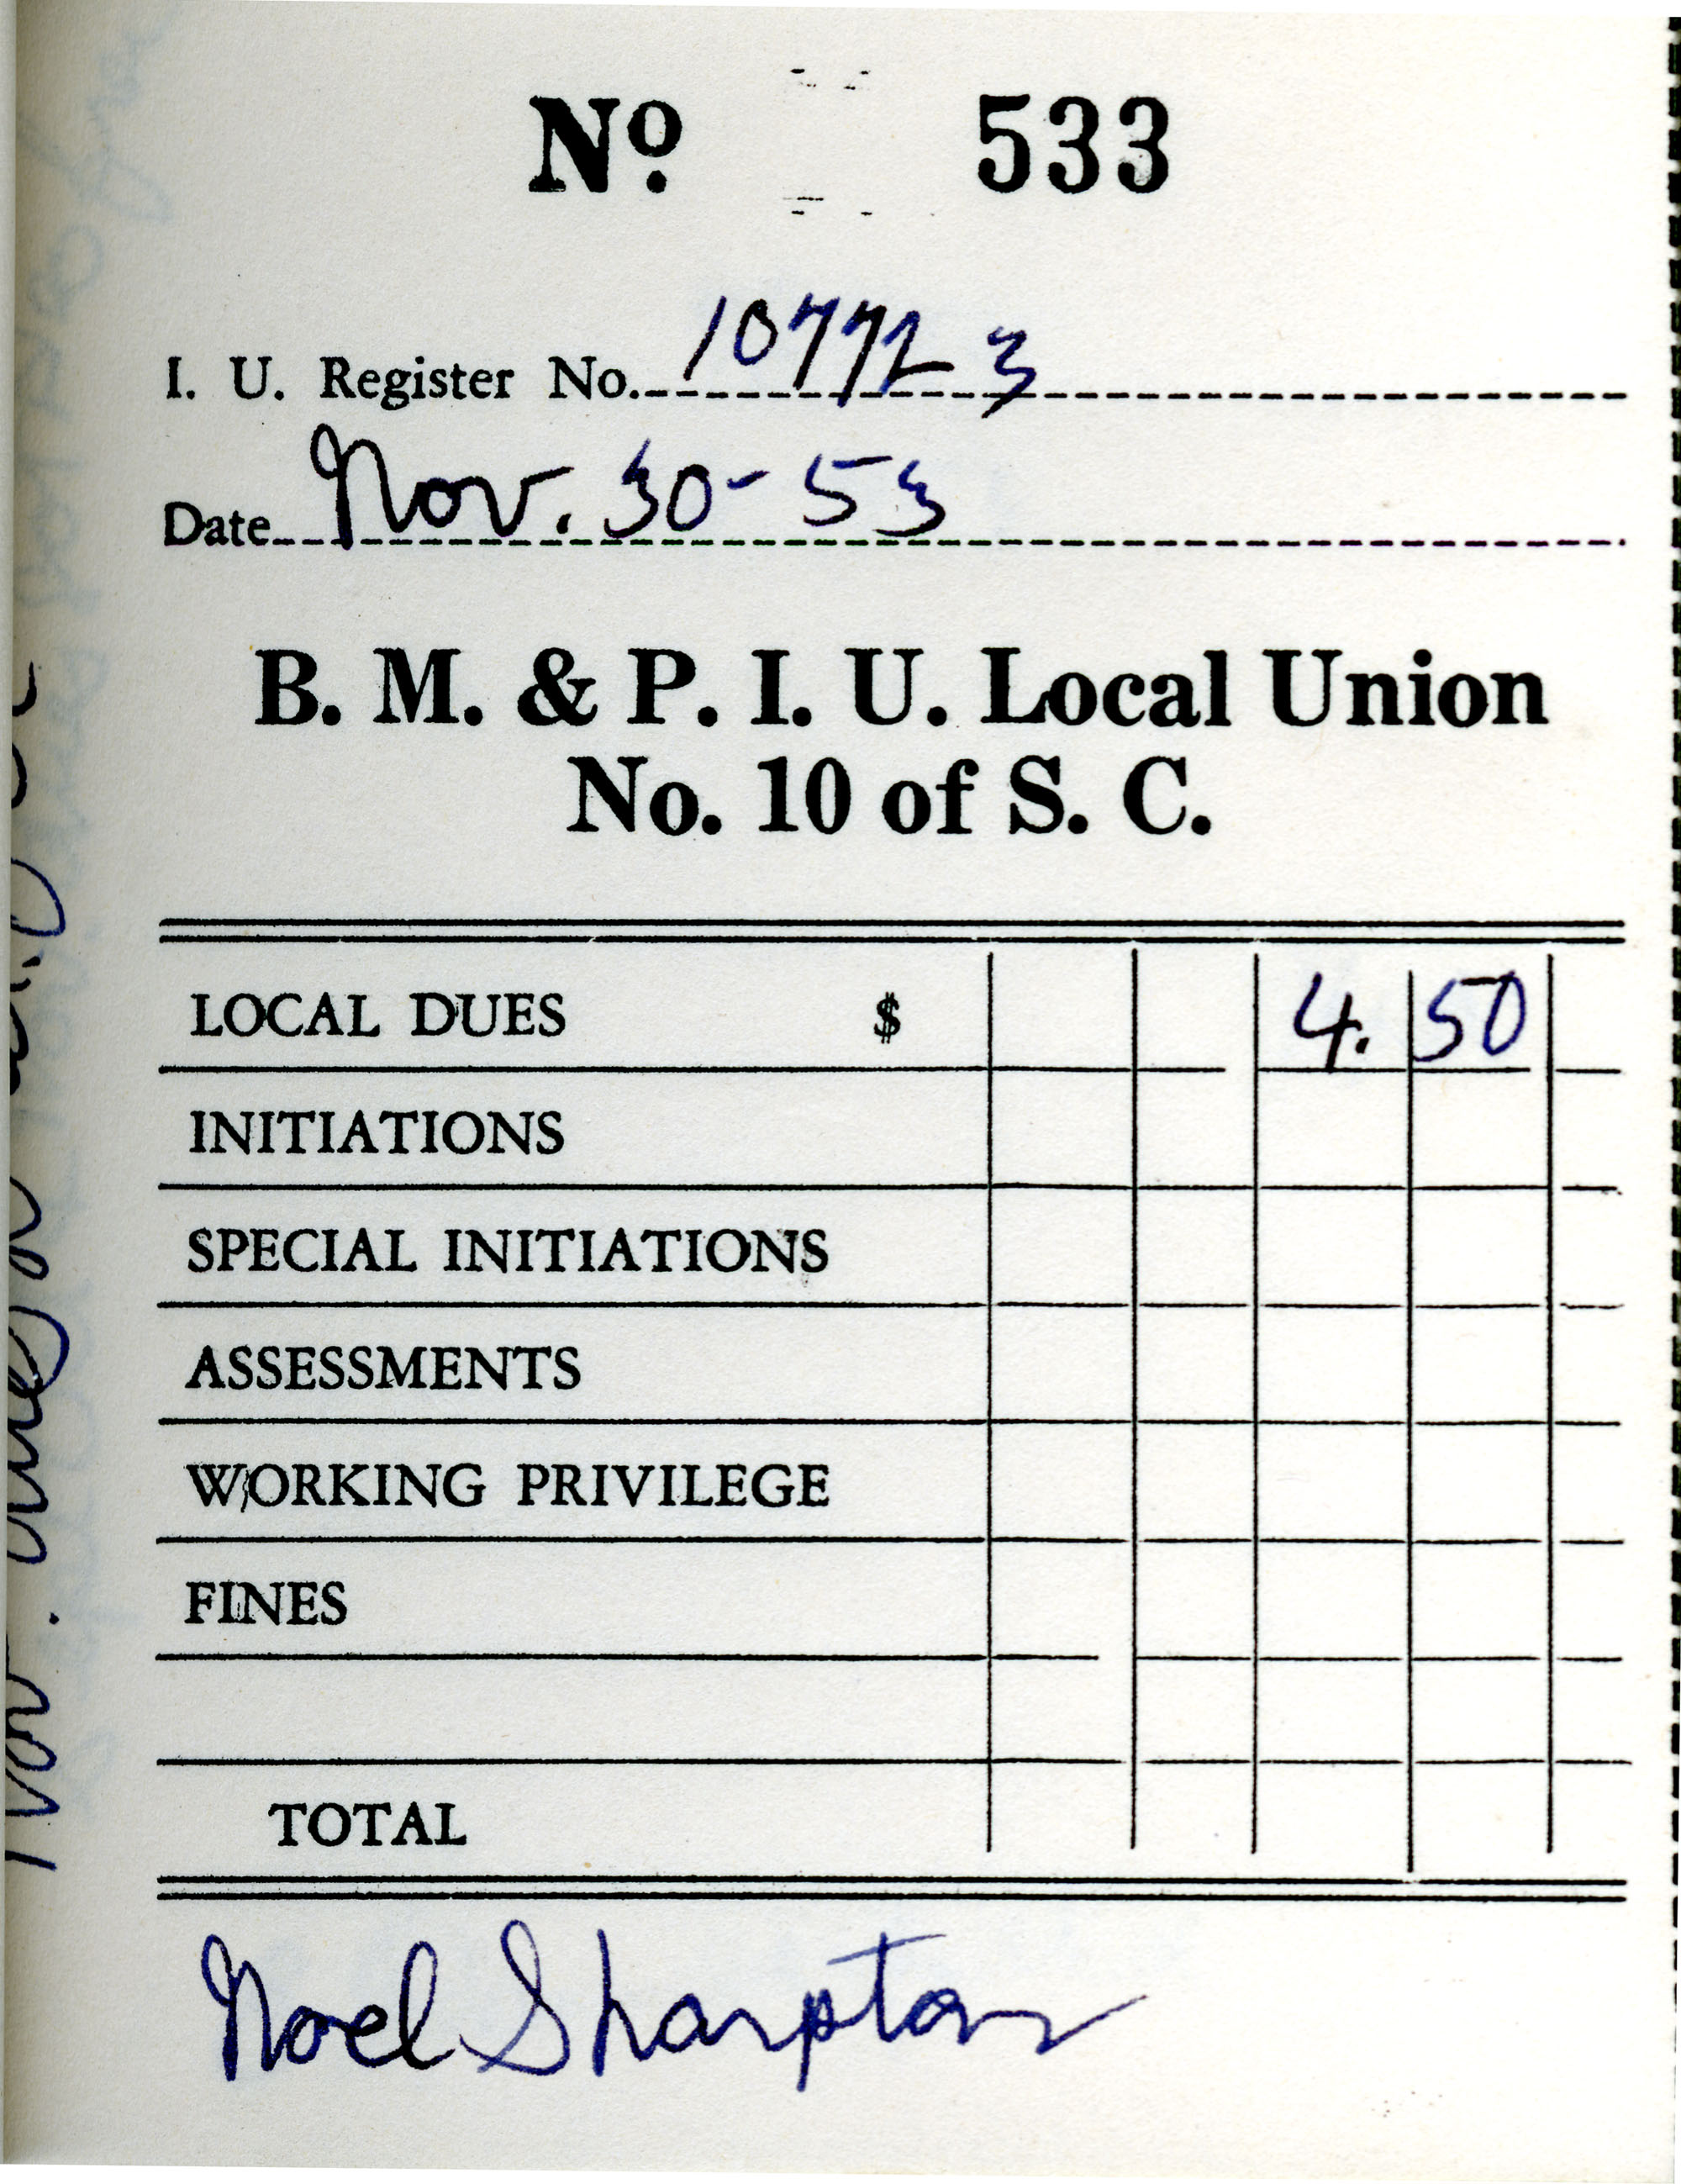 Receipt Book 2, Page 30